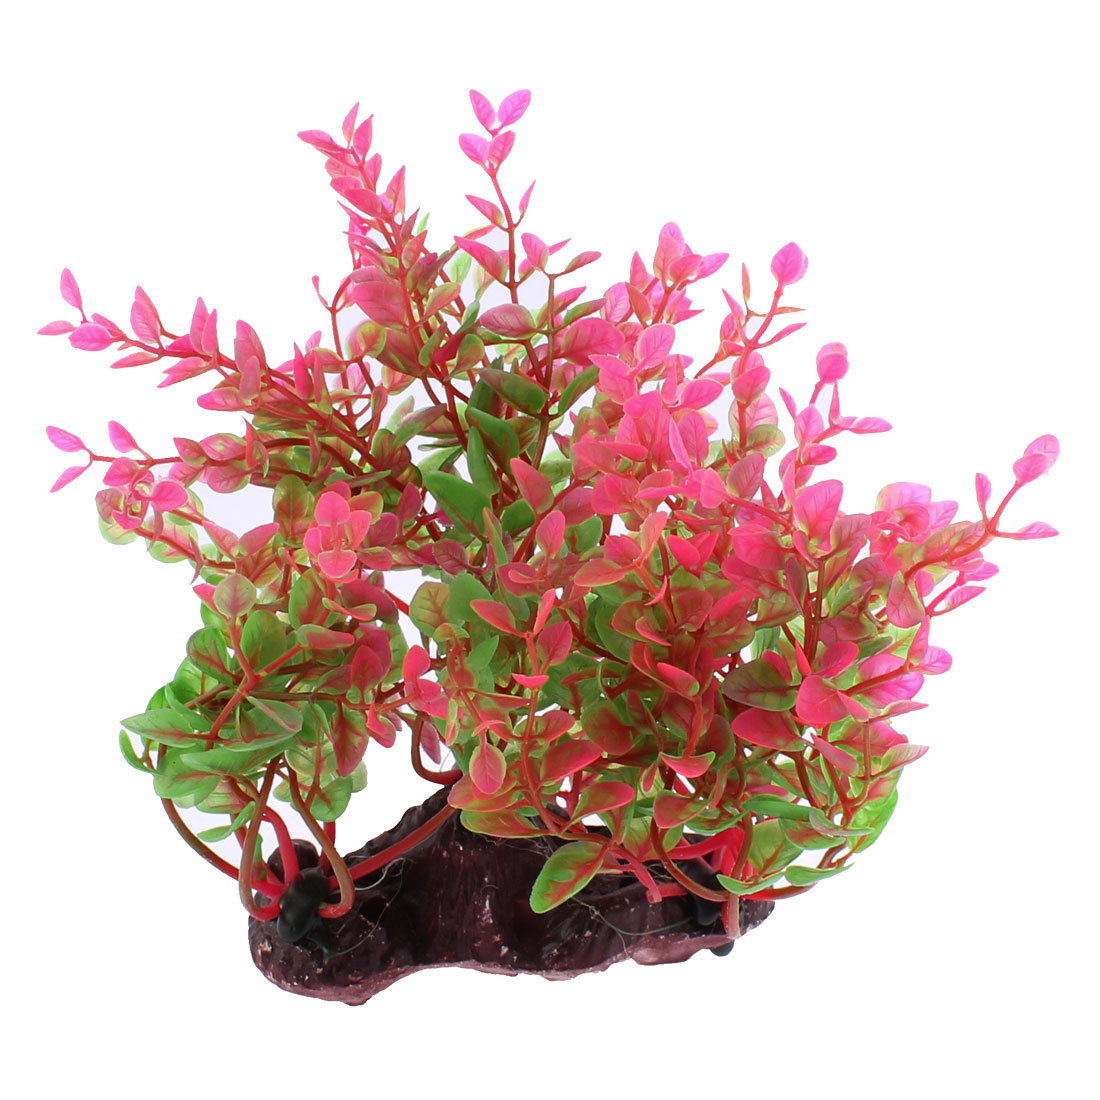 Aquarium Plastic Emulational Landscaping Water Plant Decoration